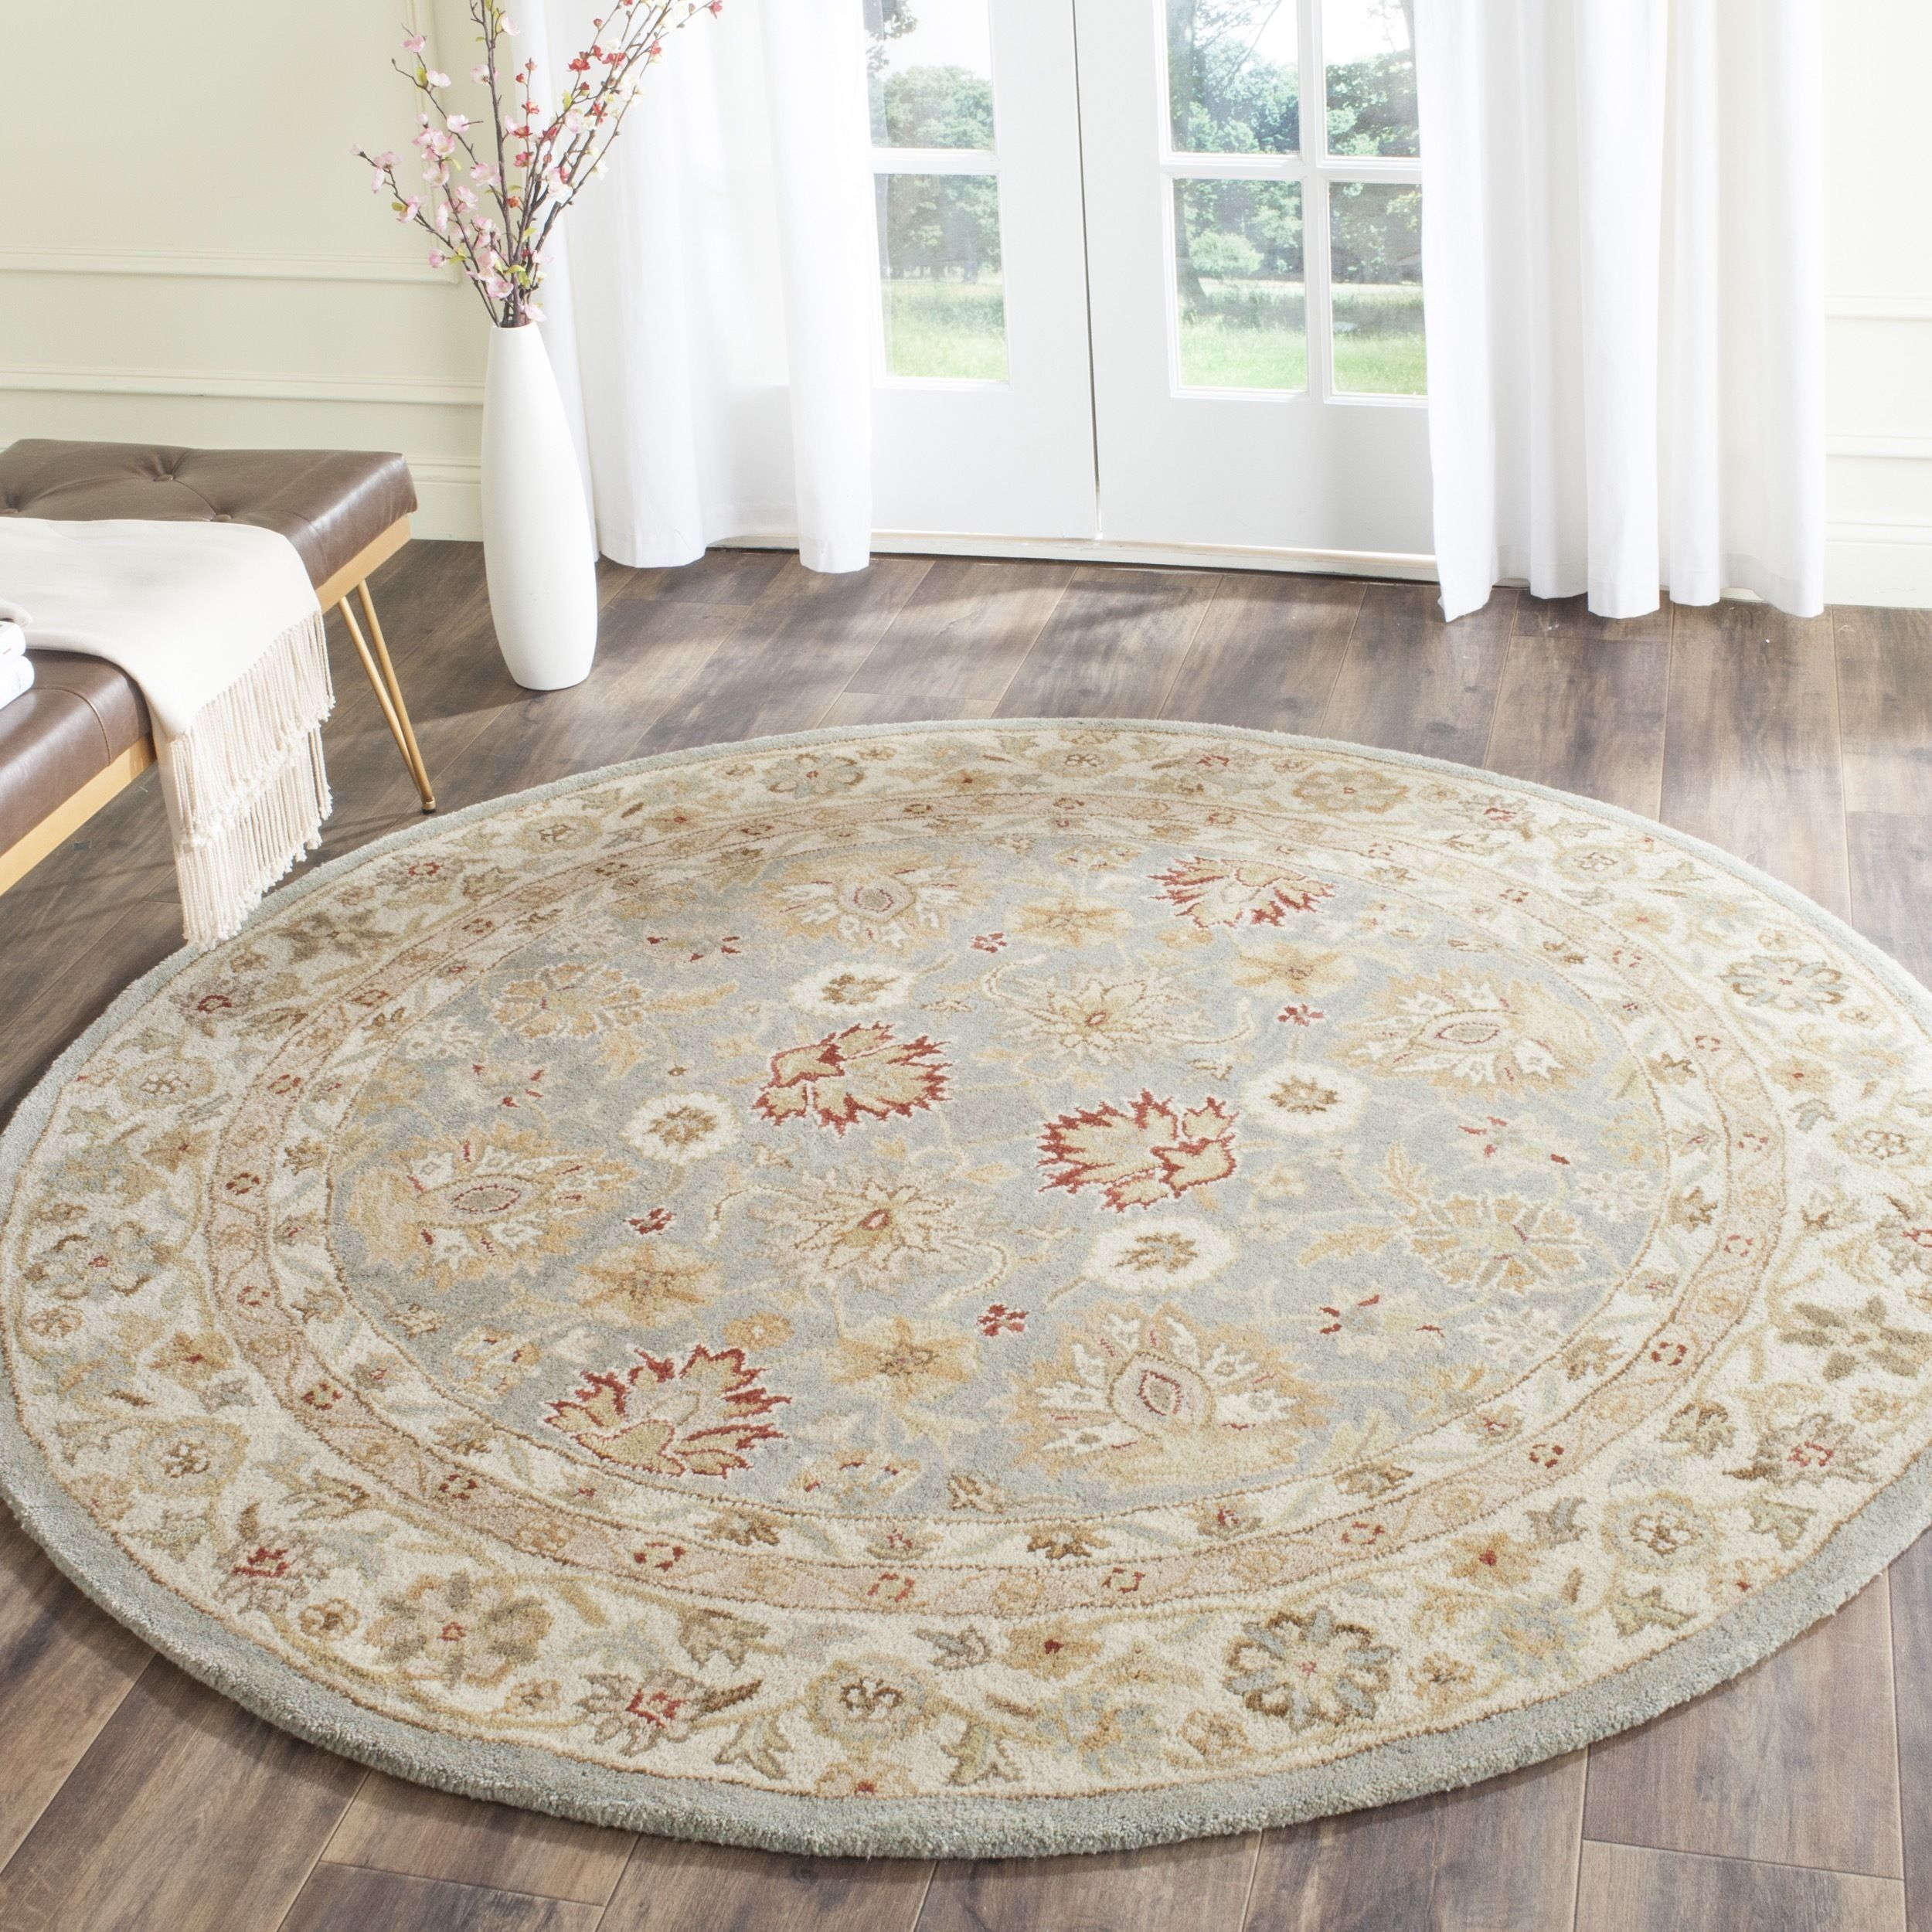 Safavieh Antiquity Grey Blue/ Beige Rug (8u0027 Round)